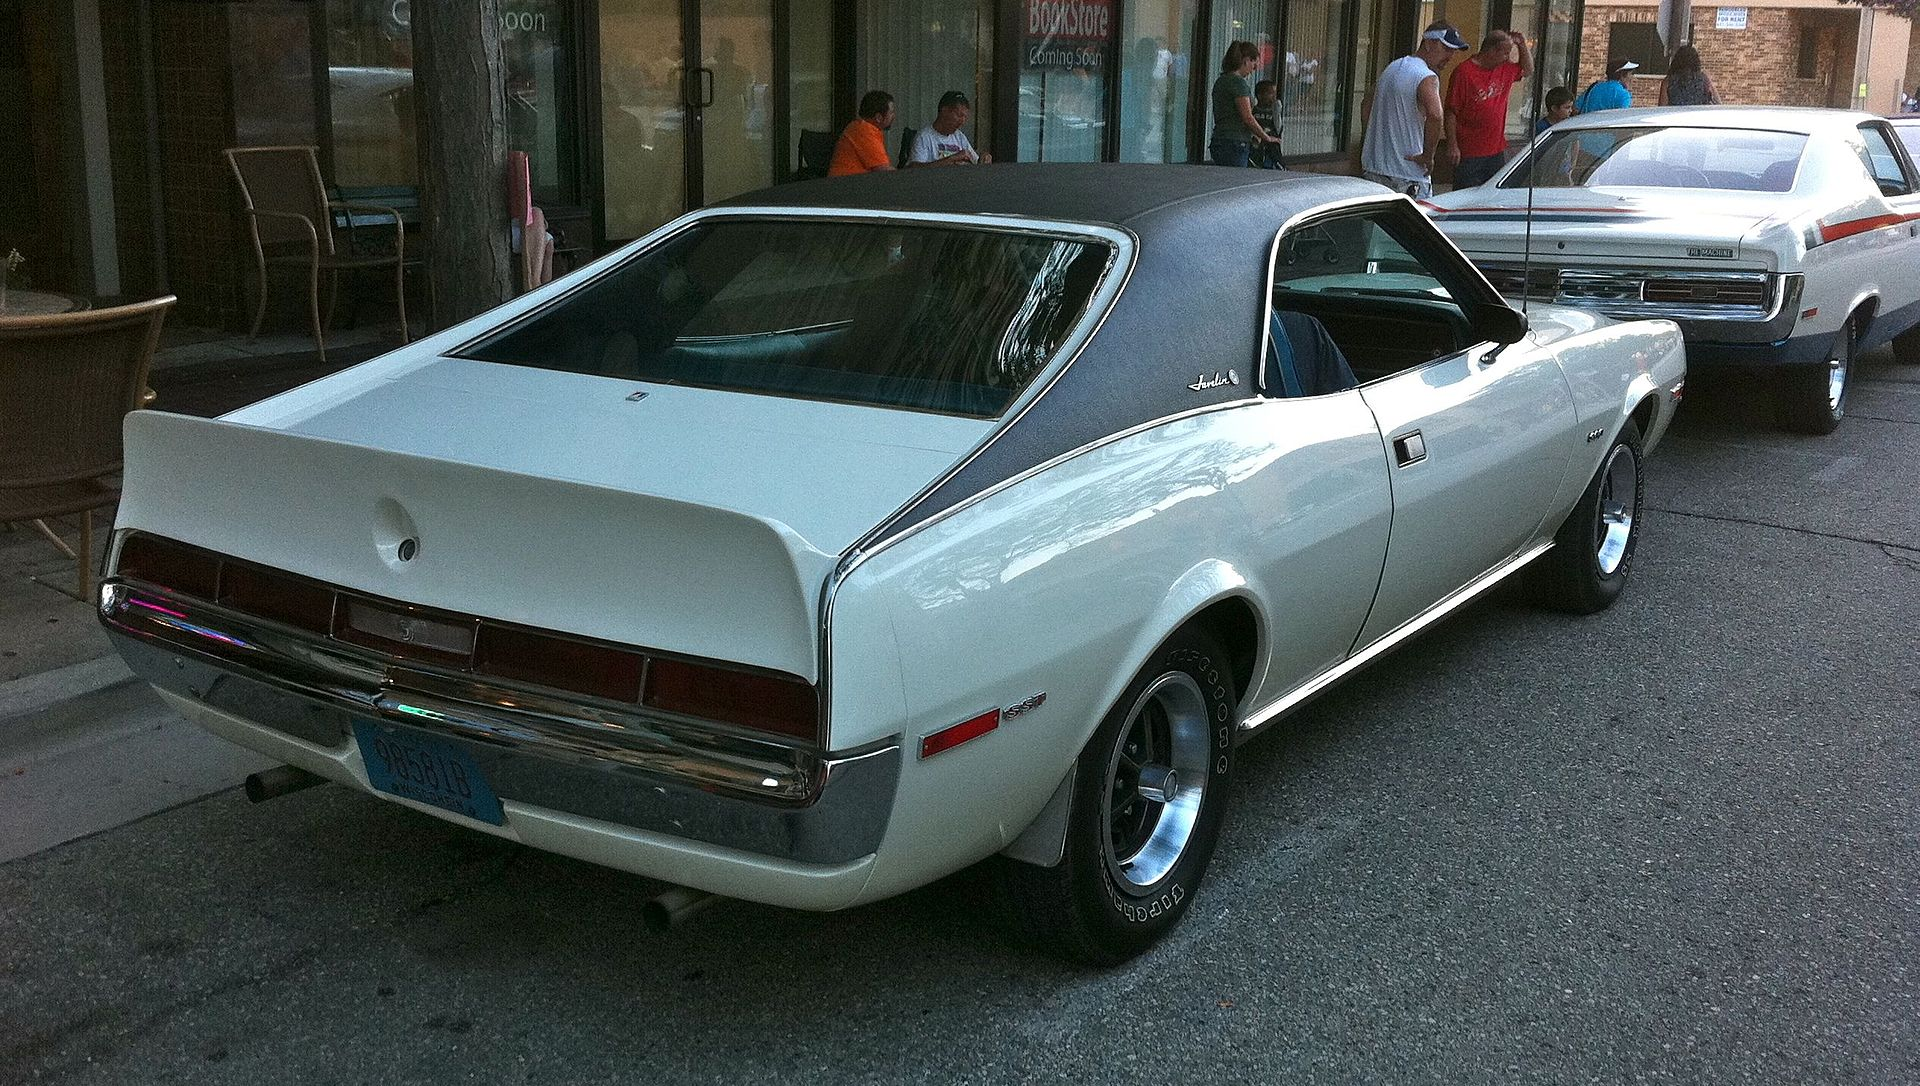 vwvortex com what is the most overlooked and underpriced pre 74 vwvortex com what is the most overlooked and underpriced pre 74 muscle car